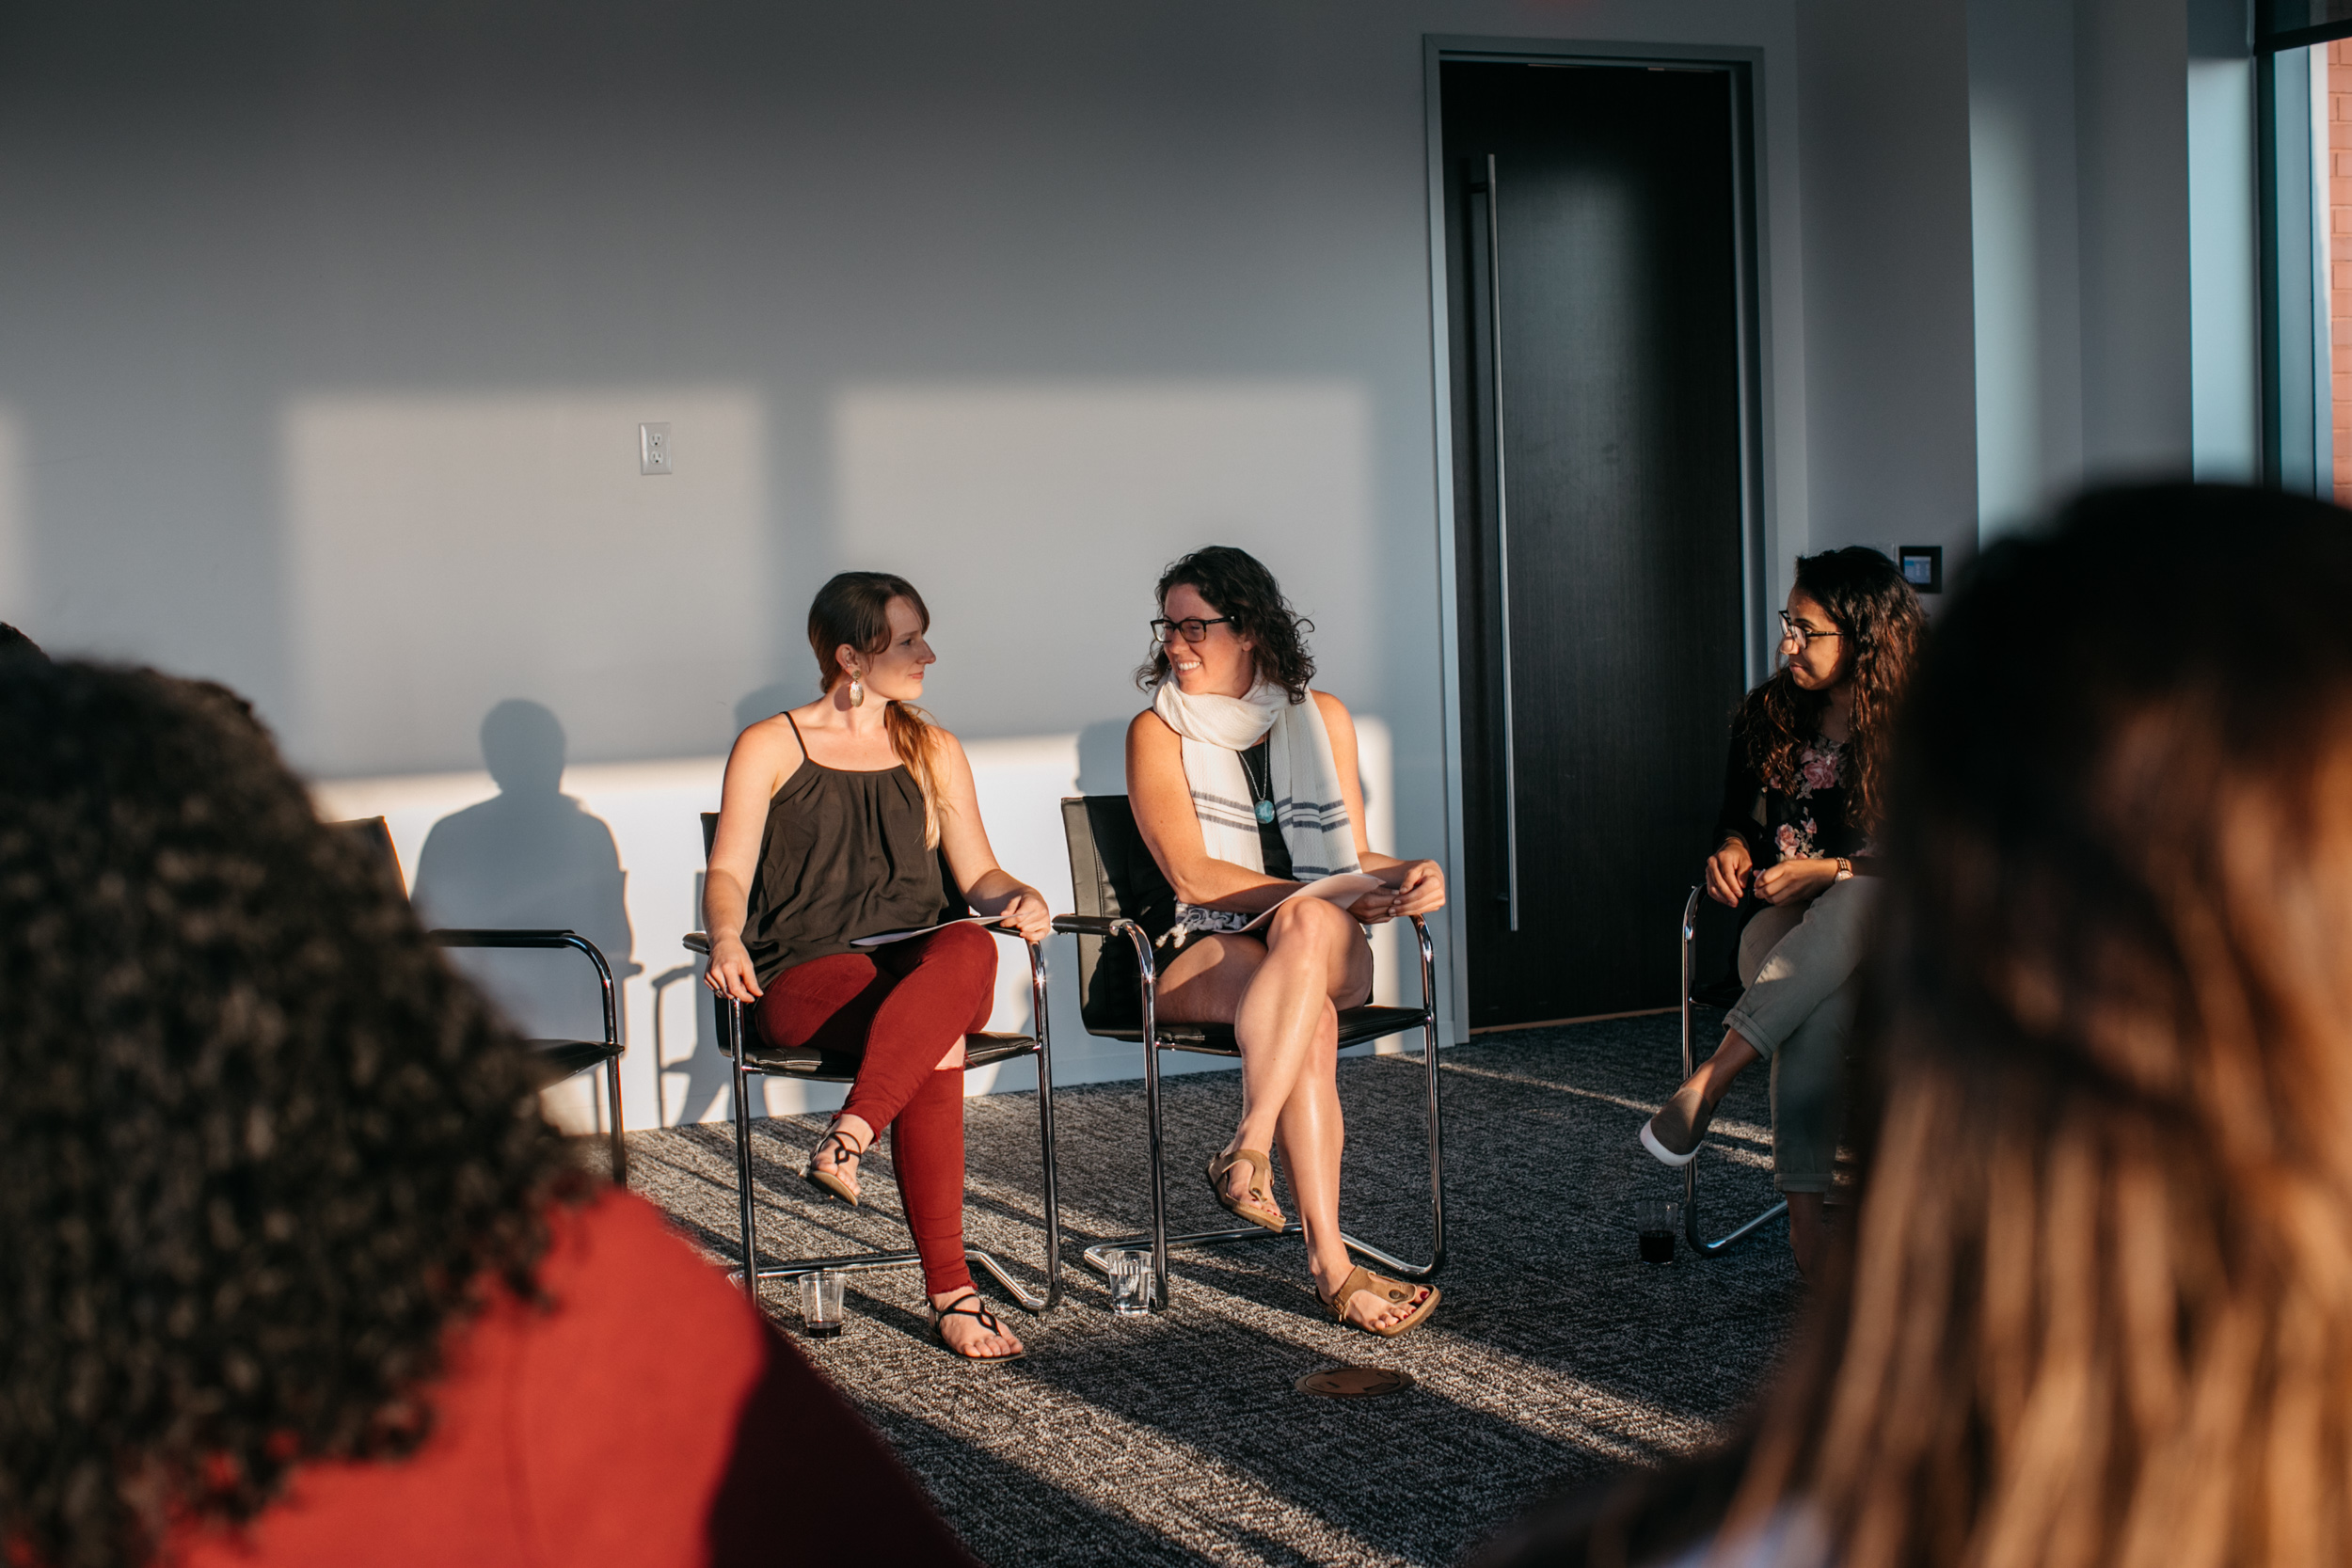 """From left to write: Life Coaches Megan Morrison and Catherine Wood chatting over their """"nervousness"""" from leading their first all women's Authentic Relating Games."""